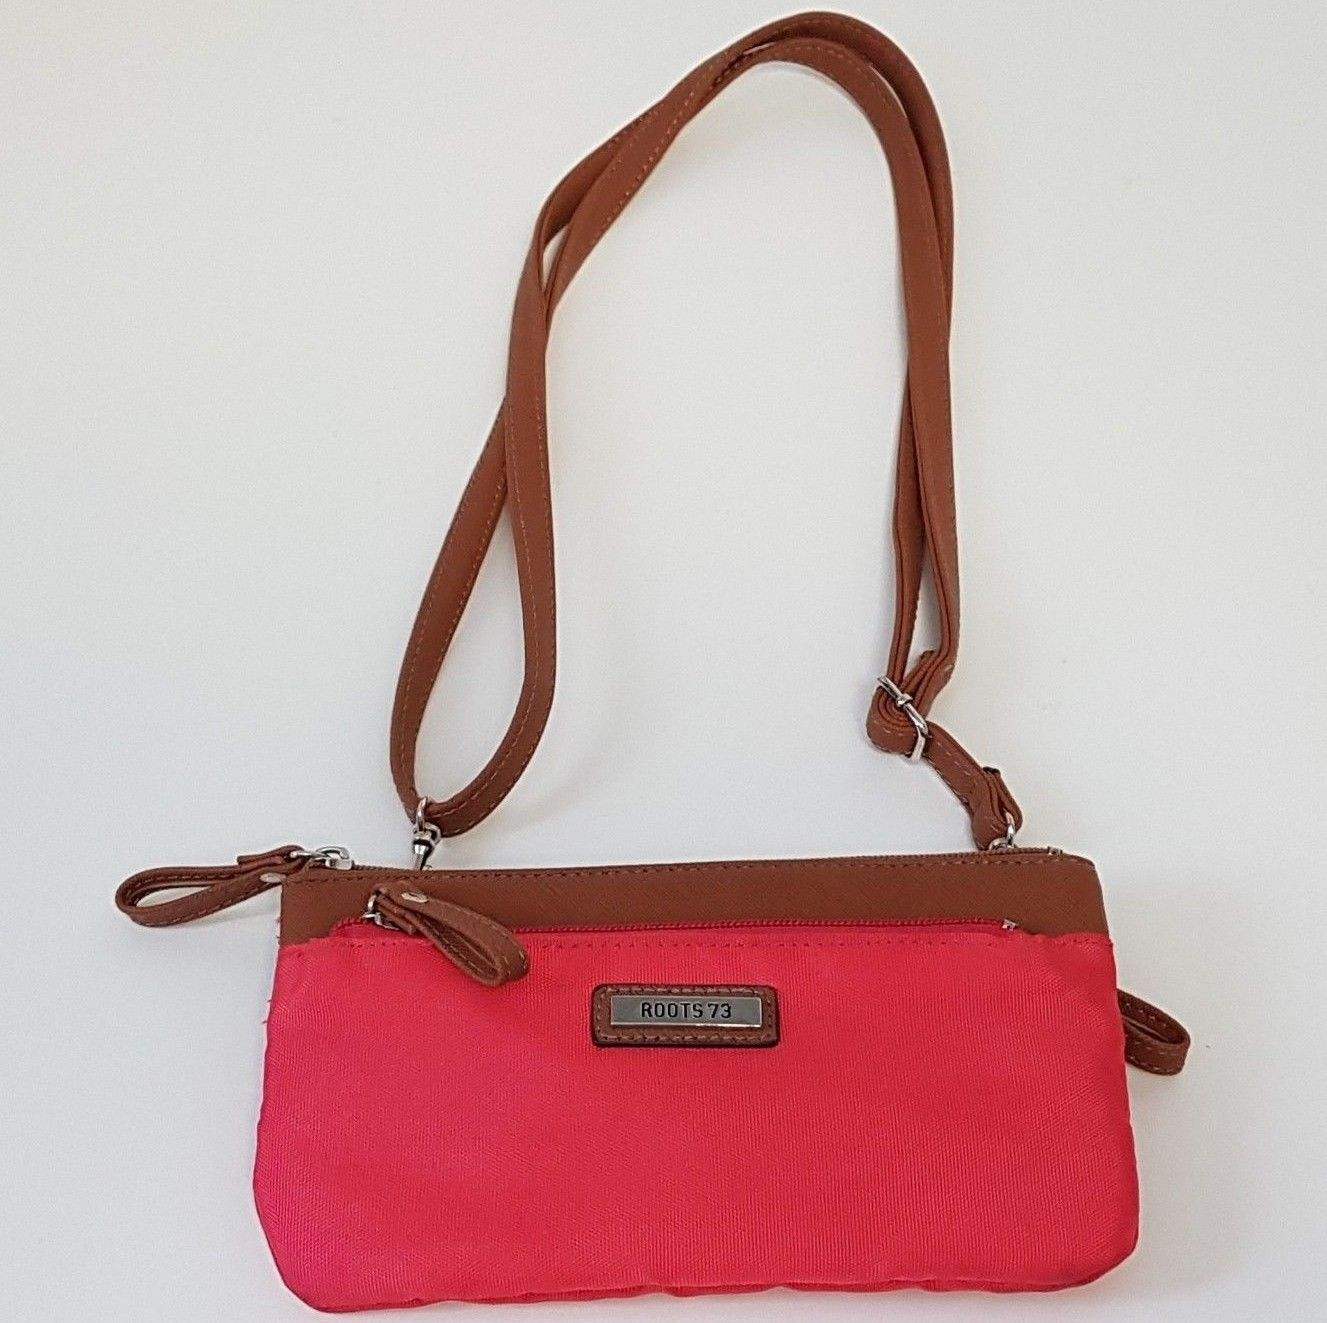 0074036dcb374 Small Roots Canada 73 Cross Body Phone Purse Clutch Wallet Fabric Women s  Red